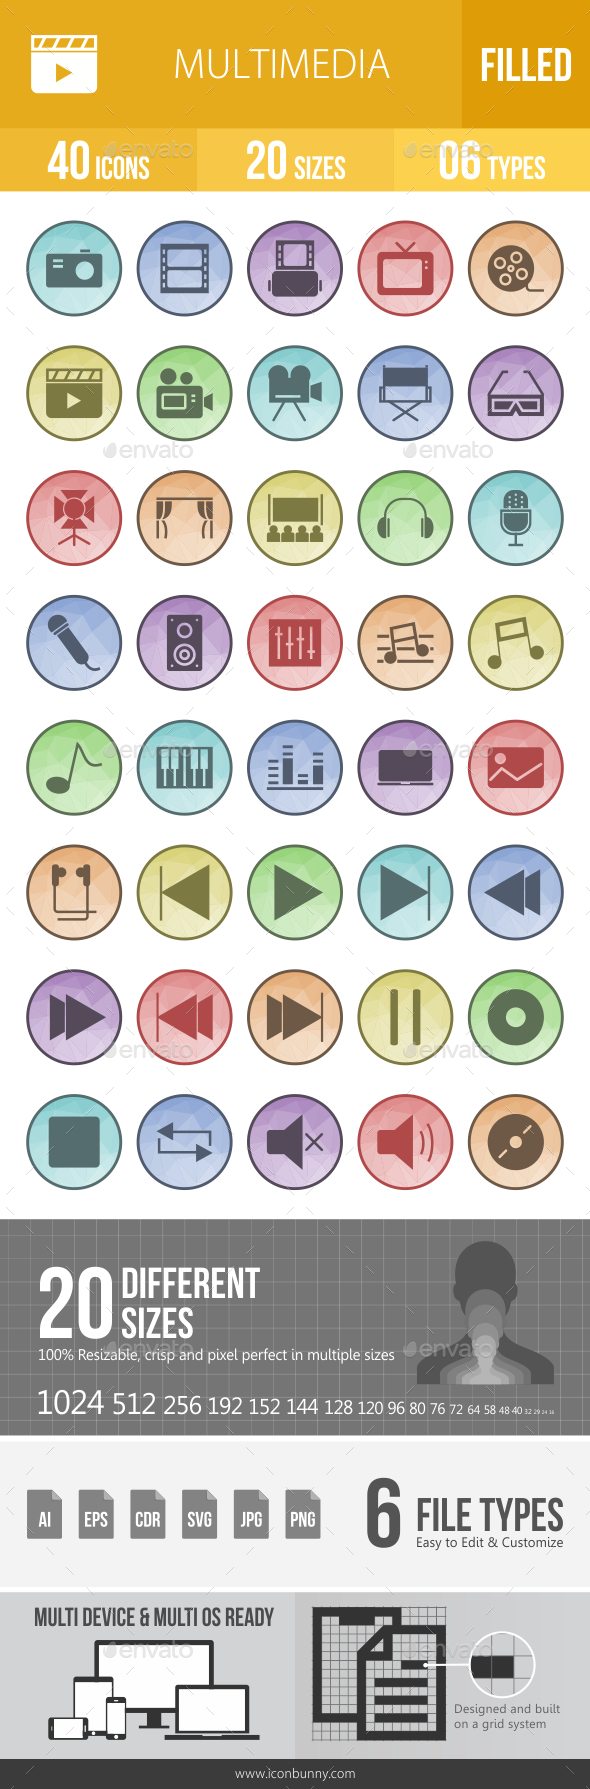 GraphicRiver Multimedia Filled Low Poly B G Icons 20792570